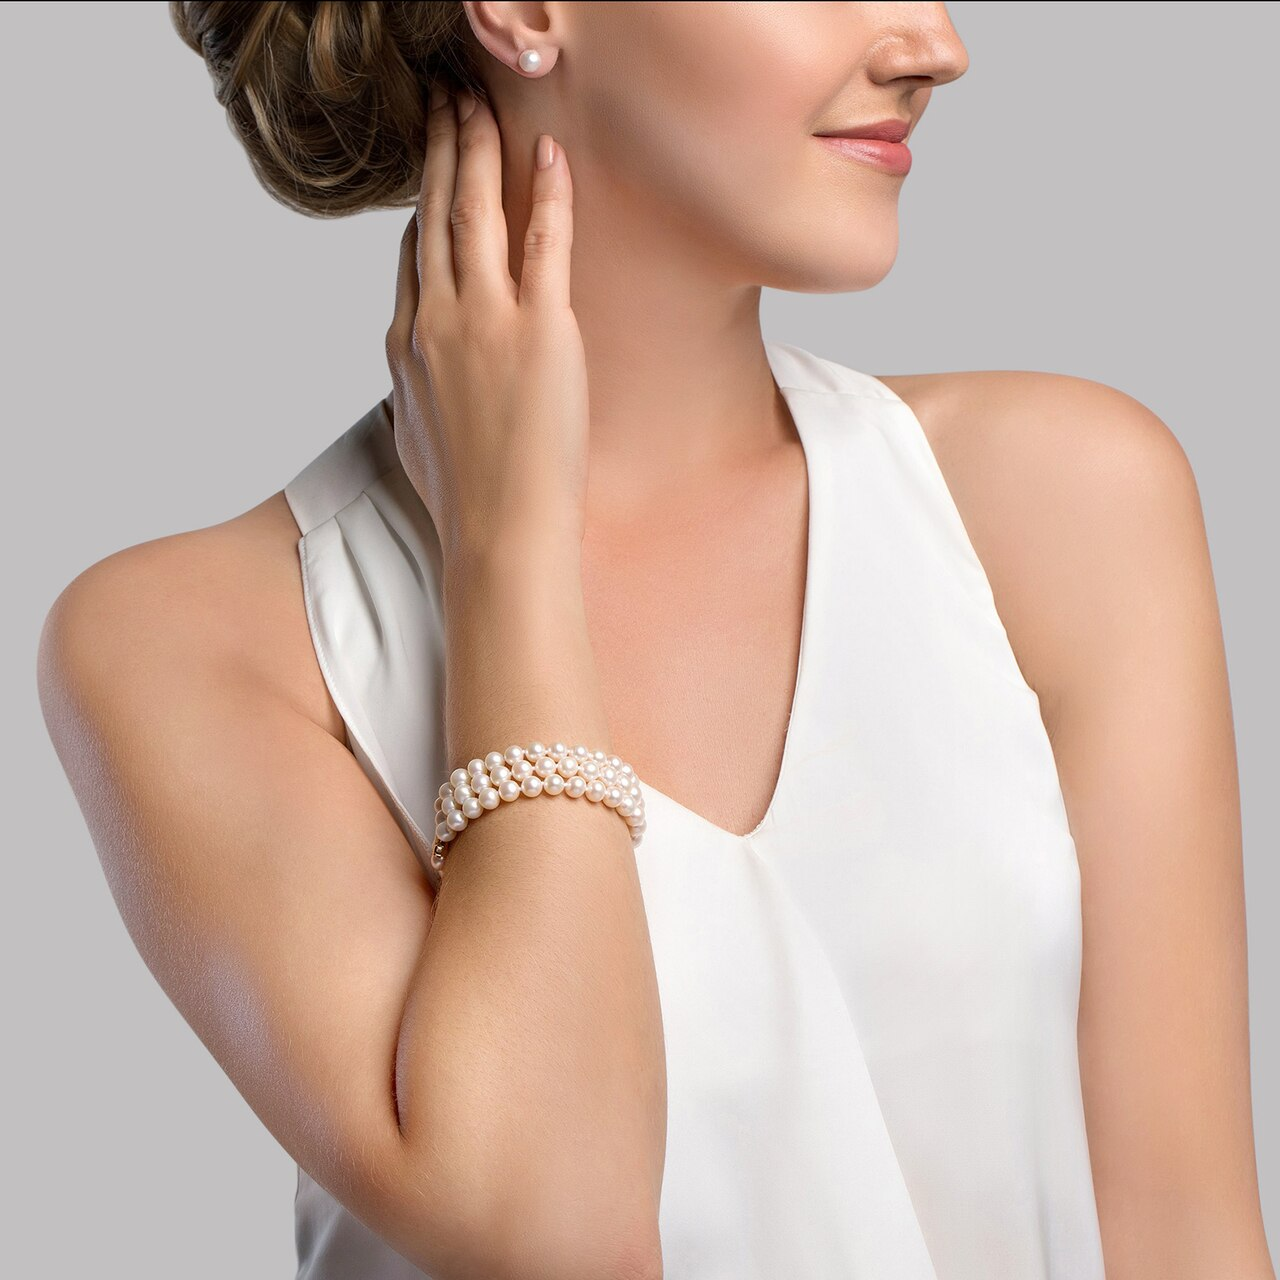 This elegant bracelet features 6.0-6.5mm triple strand Japanese Akoya pearls, handpicked for their luminous luster